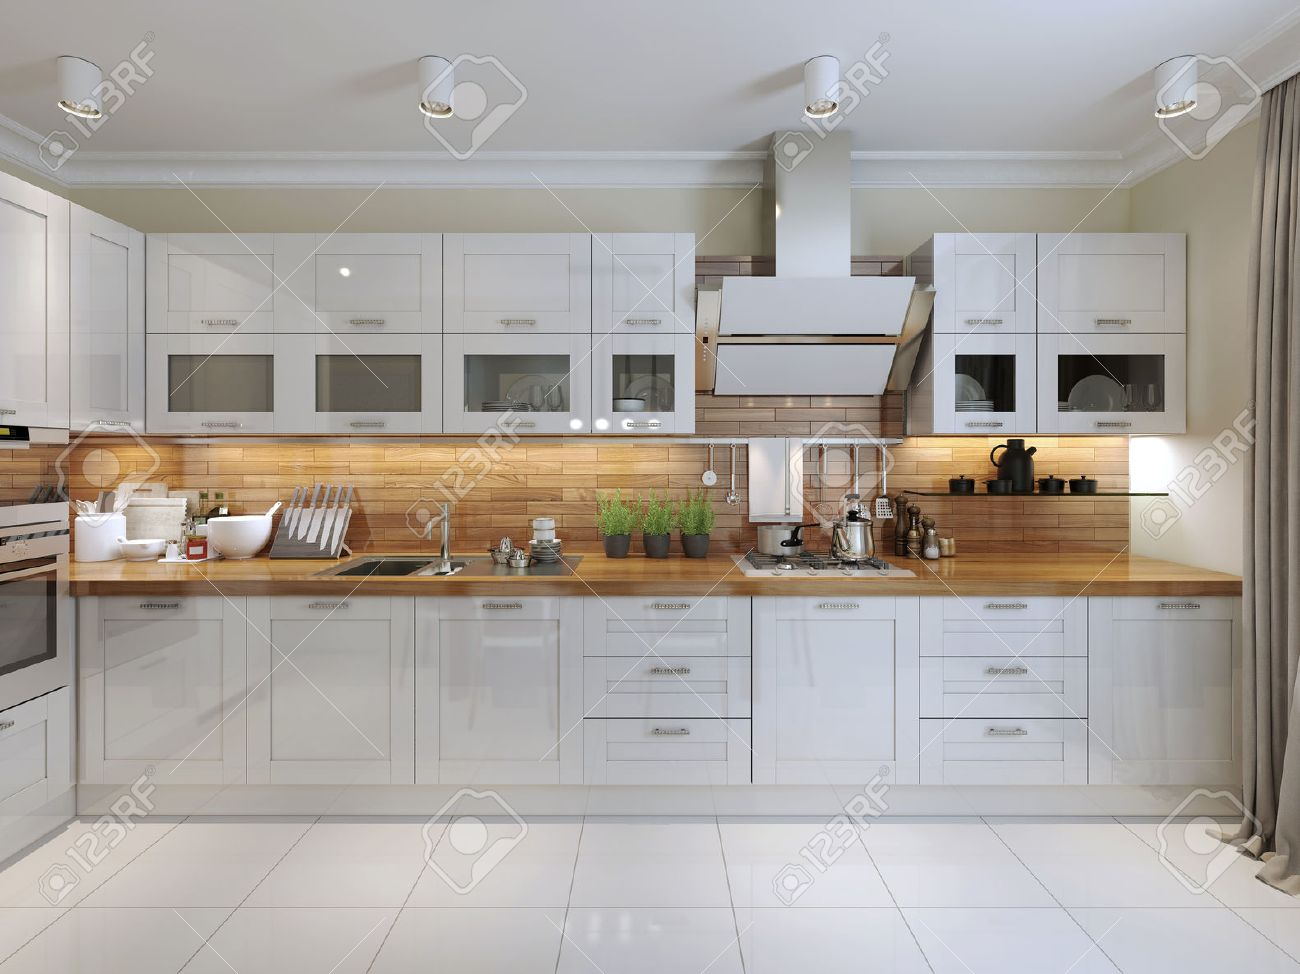 Contemporary Kitchen Design 3d Render Stock Photo Picture And Royalty Free Image Image 47271413